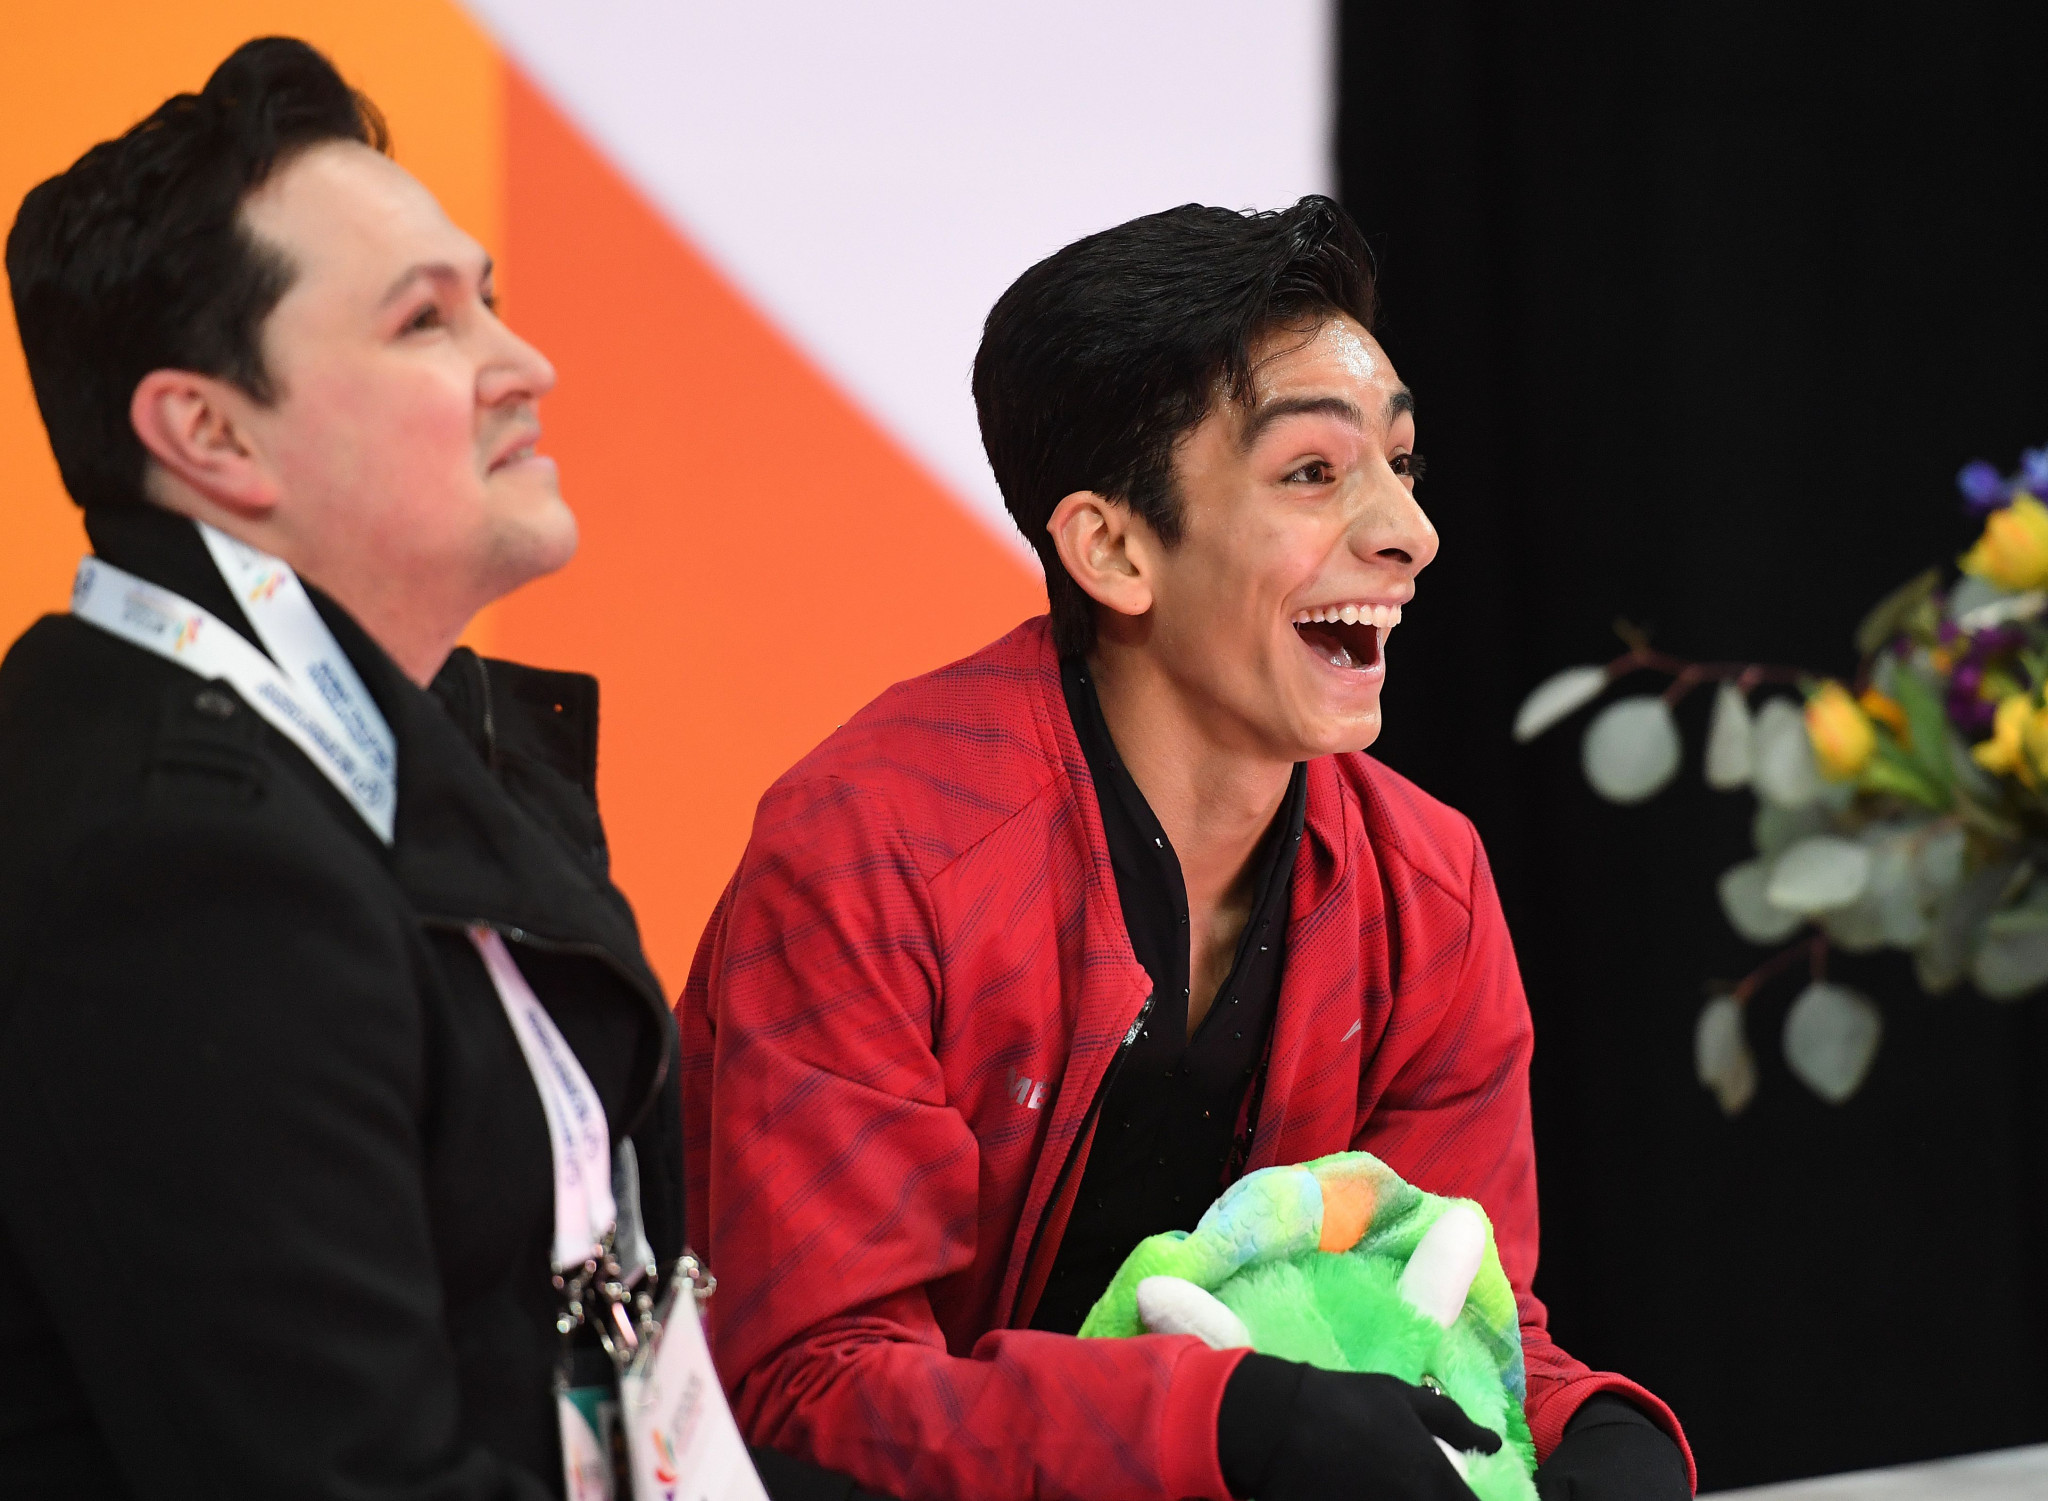 Donovan Carrillo finished 22nd at the 2018 World Figure Skating Championships ©Getty Images